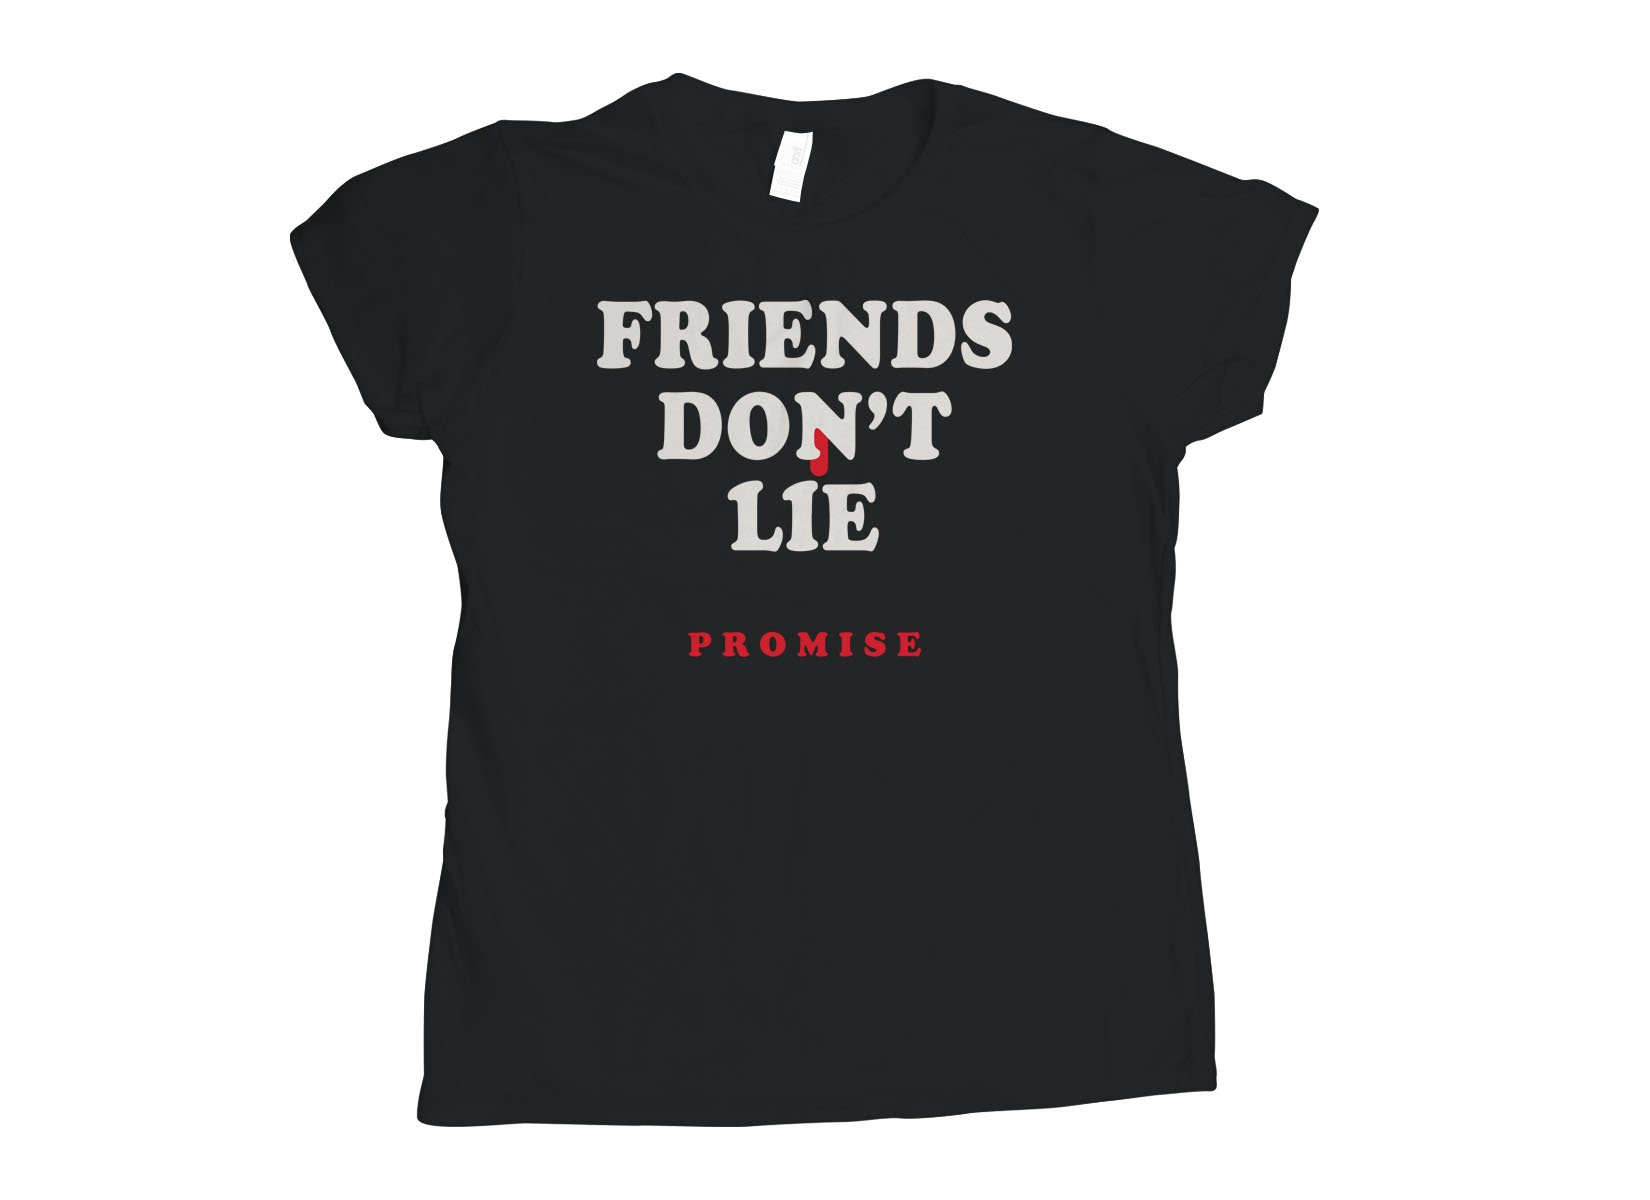 Friends Don't Lie on Womens T-Shirt